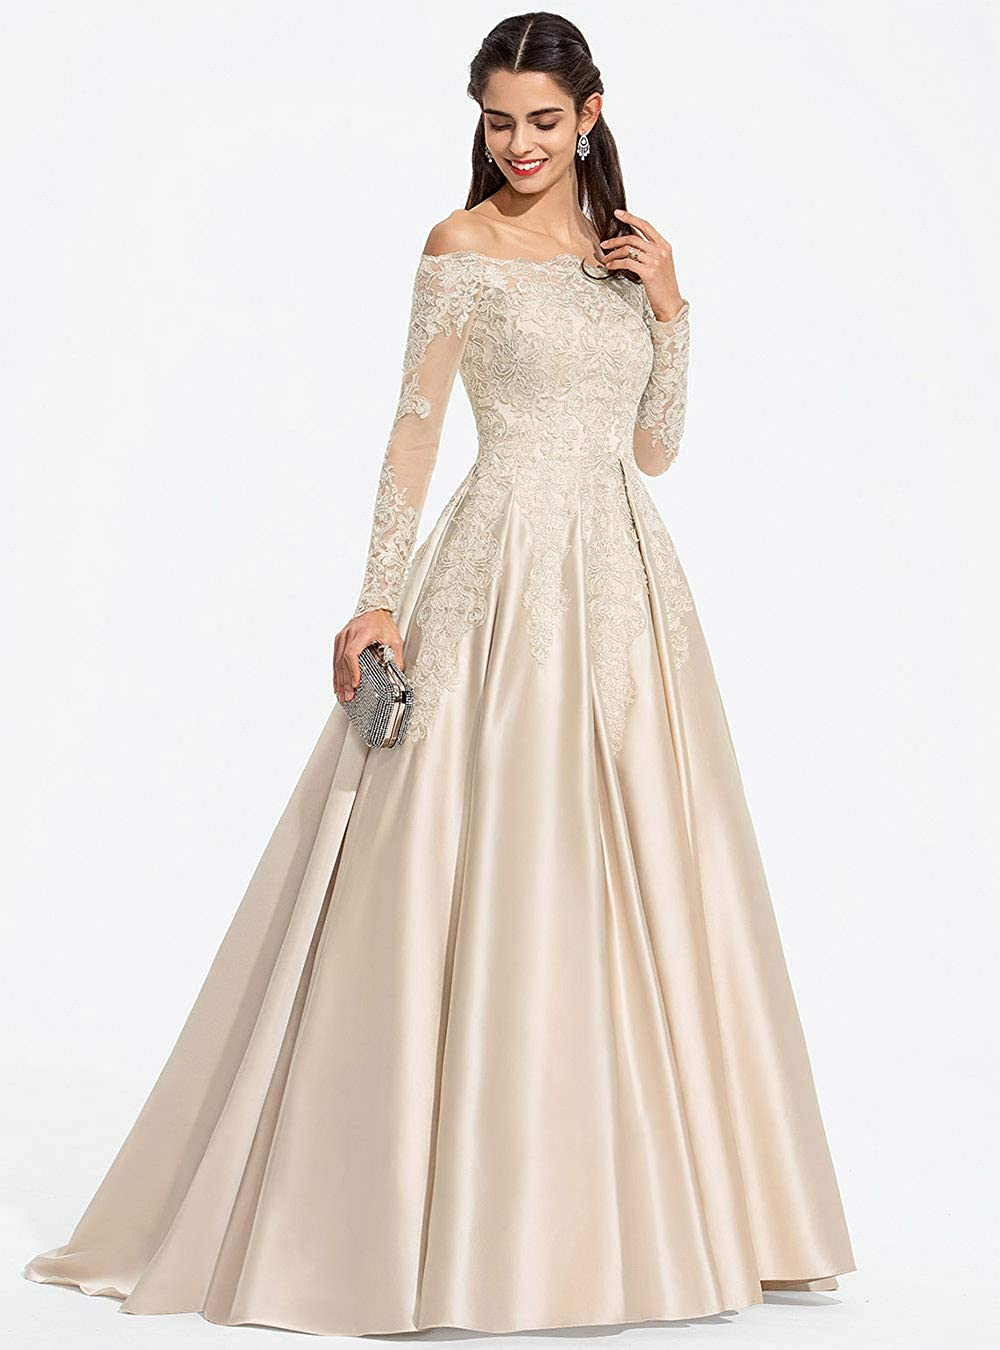 Miao Duo Women's Off The Shoulder Lace Appliuqes Satin Prom Dresses with Long Sleeve Formal Party Gowns MDPM3234